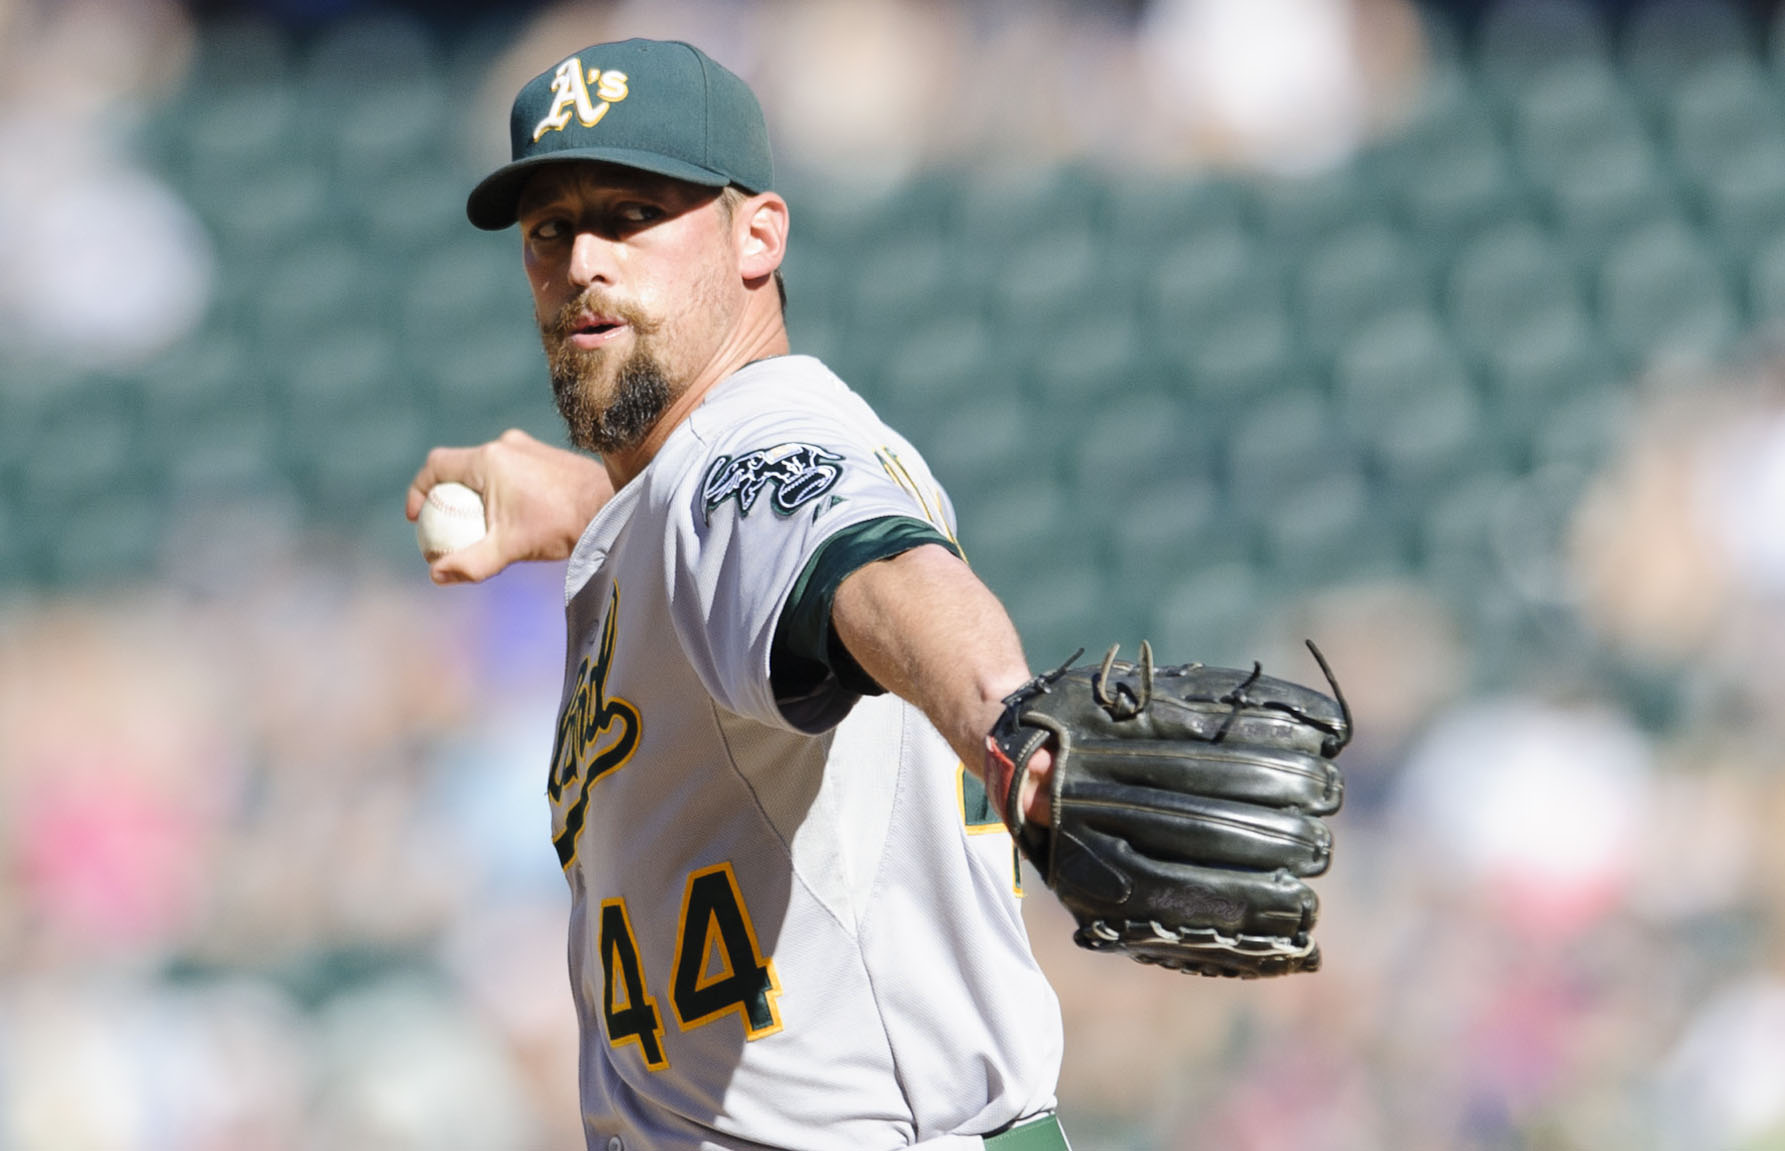 Luke Gregerson has signed with the Astros. (USA TODAY Sports)